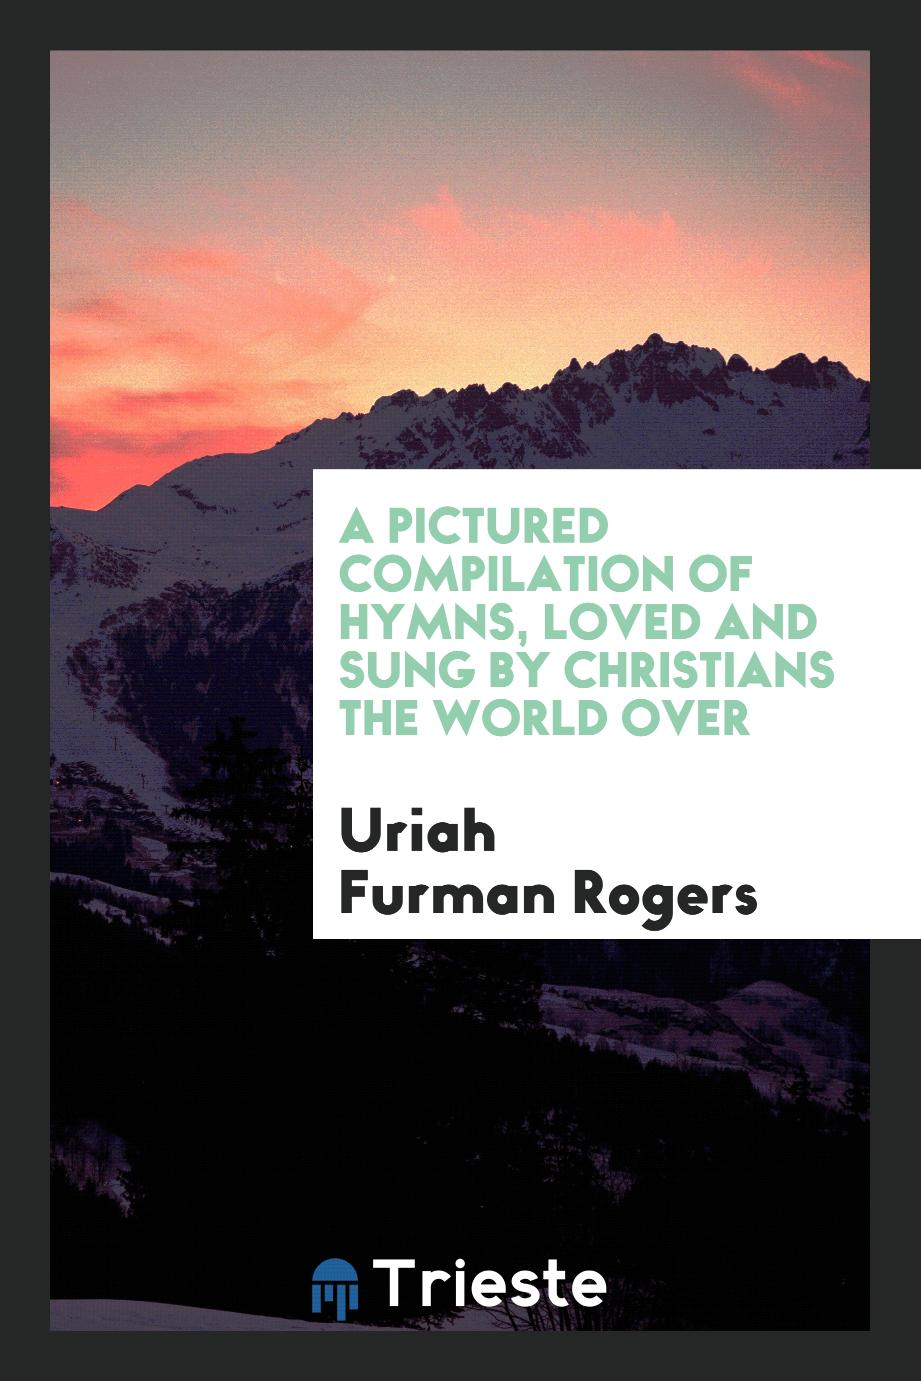 A Pictured Compilation of Hymns, Loved and Sung by Christians the World Over